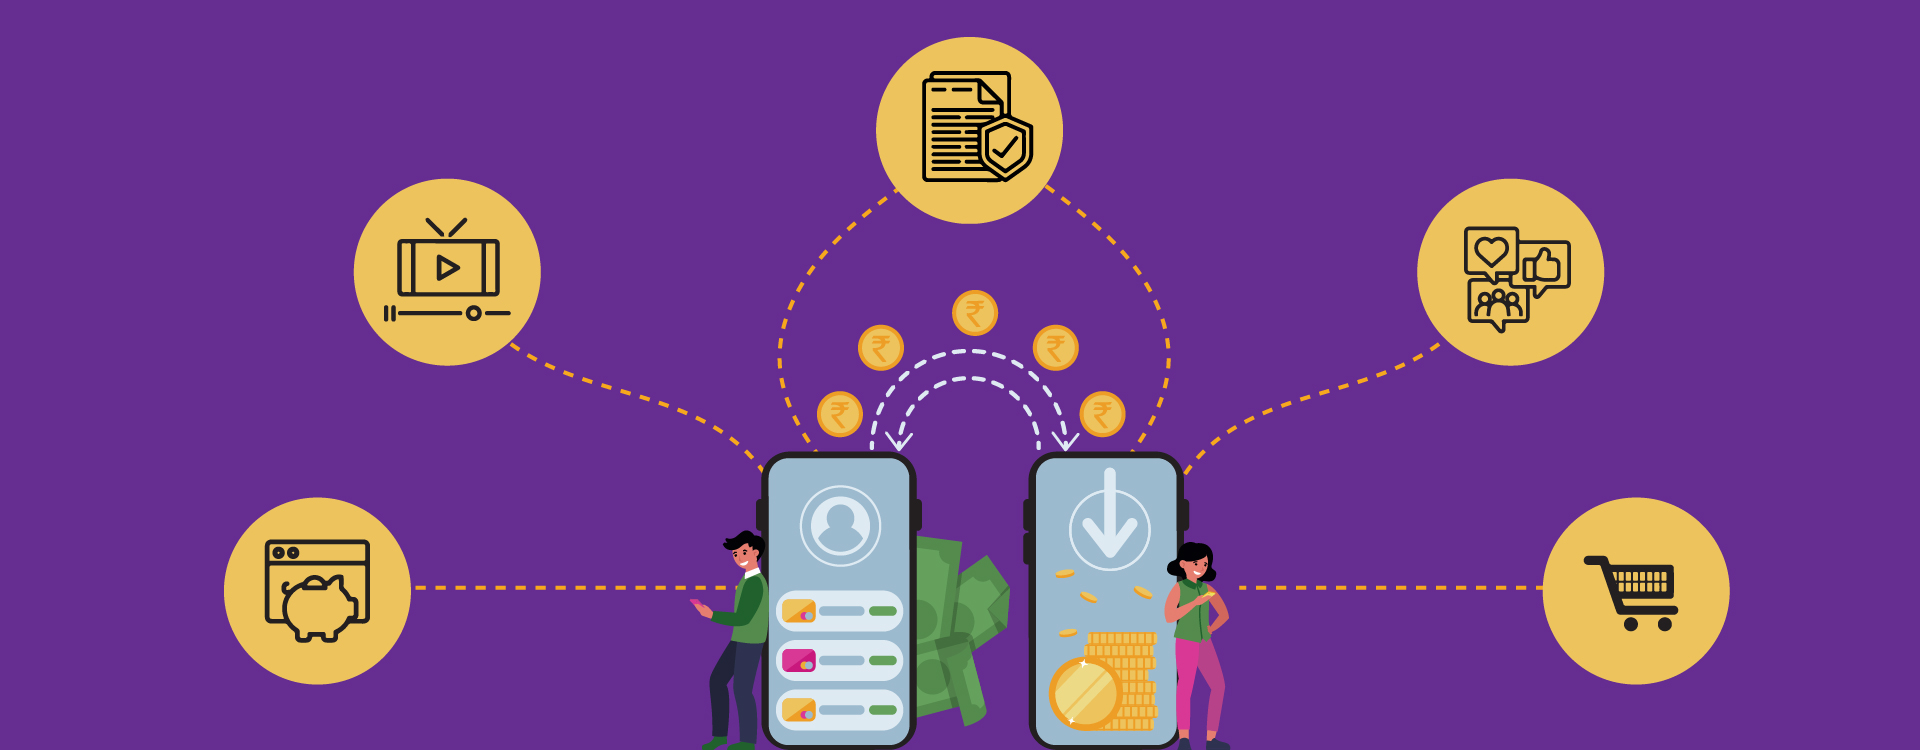 The new distribution channels for the fintech companies will be through collaborating with banks, OTT platforms, social and e-commerce.